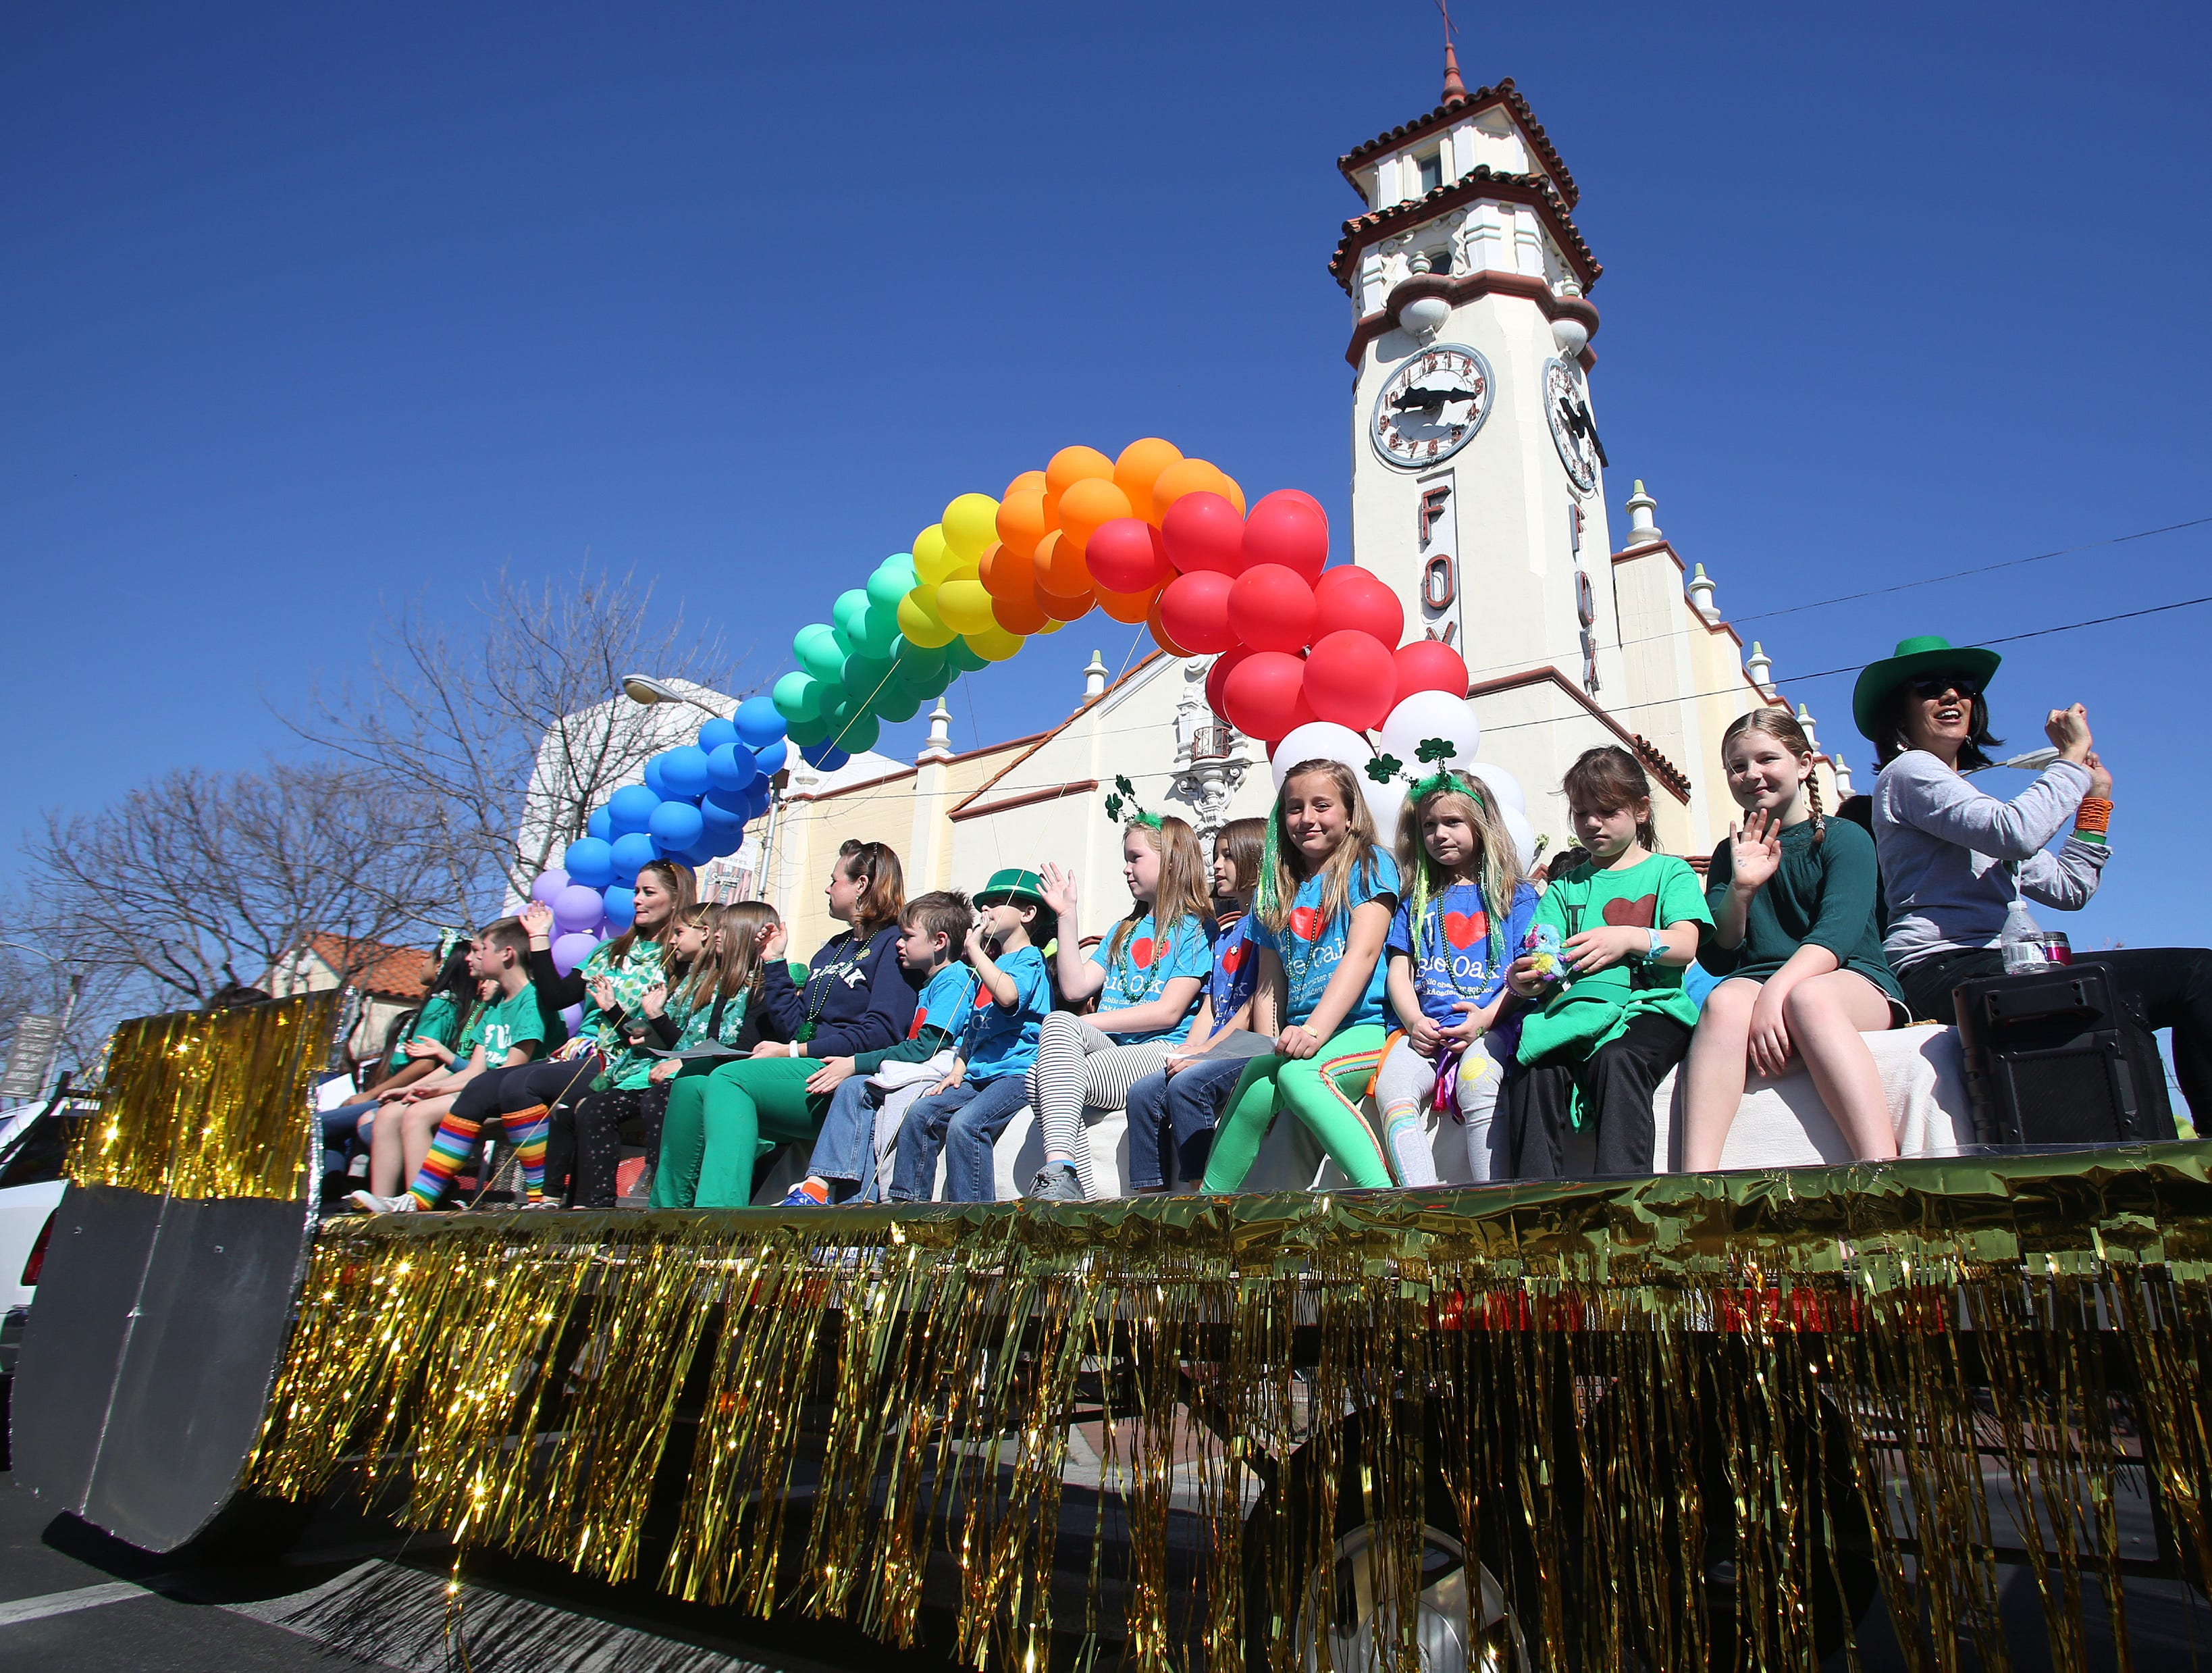 The Academies float rides on past the Fox at this year's St. Patrick's Day parade rolling through Main Street Saturday, March 16, 2019 in Visalia, Calif.